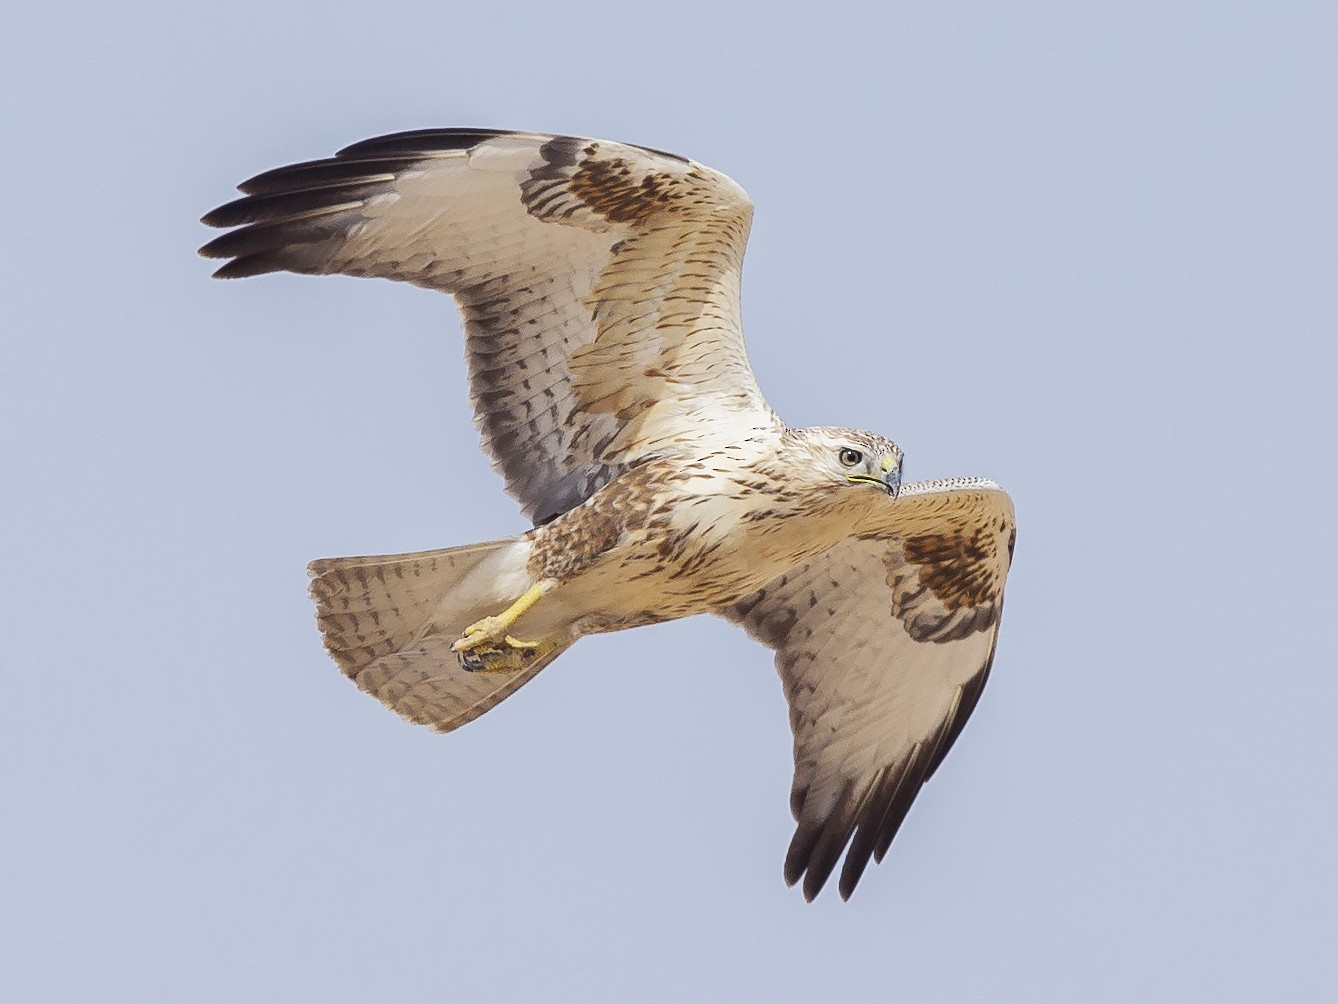 Long-legged Buzzard - Omar alshaheen